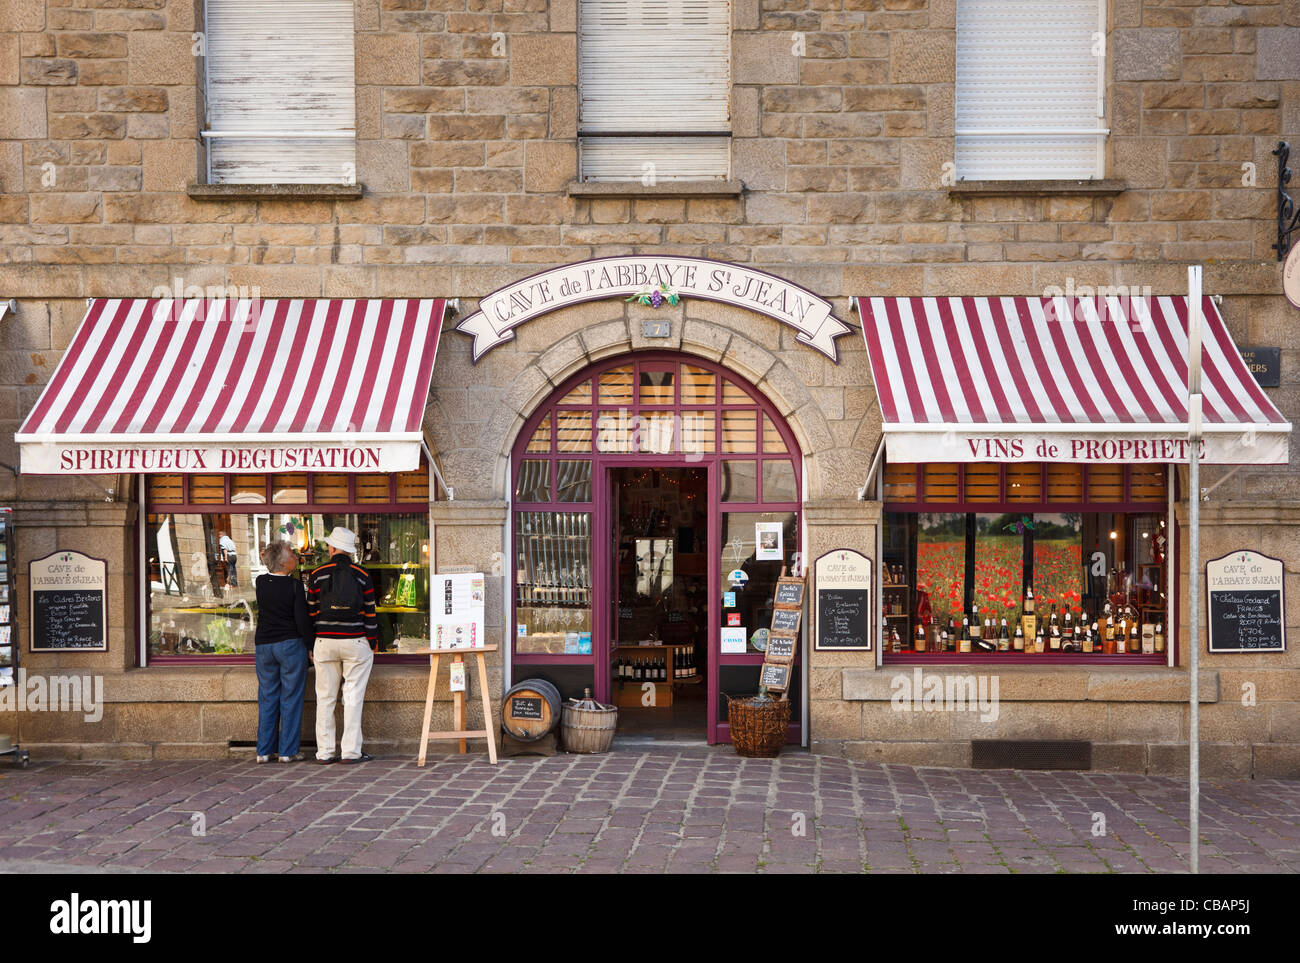 Wine merchants shop in St Malo, Brittany, France - Stock Image